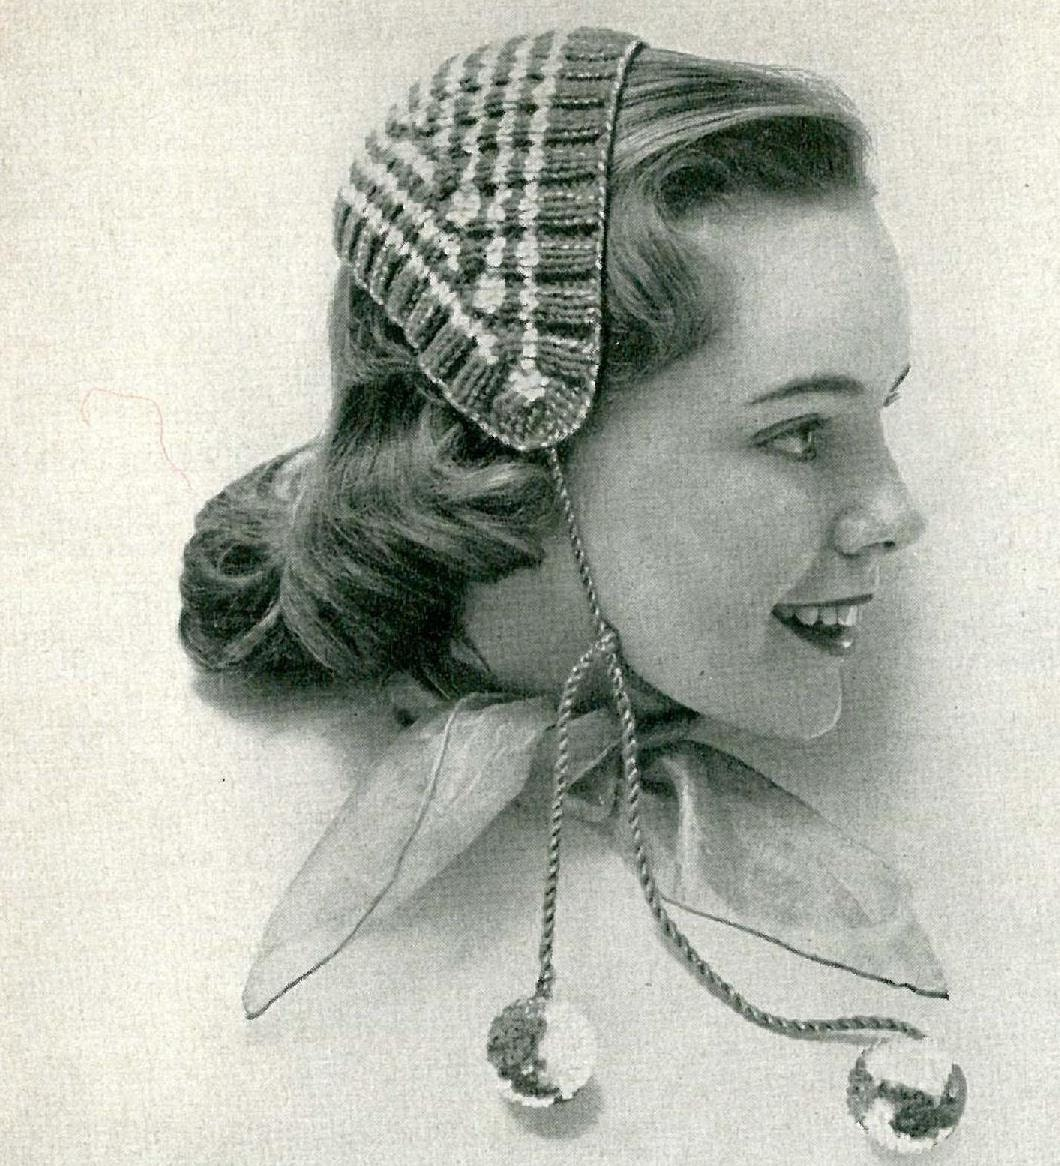 Knitting Pattern For Head Scarf : Items similar to JIBBER - Knit Head Scarf Pattern (SNH117) on Etsy